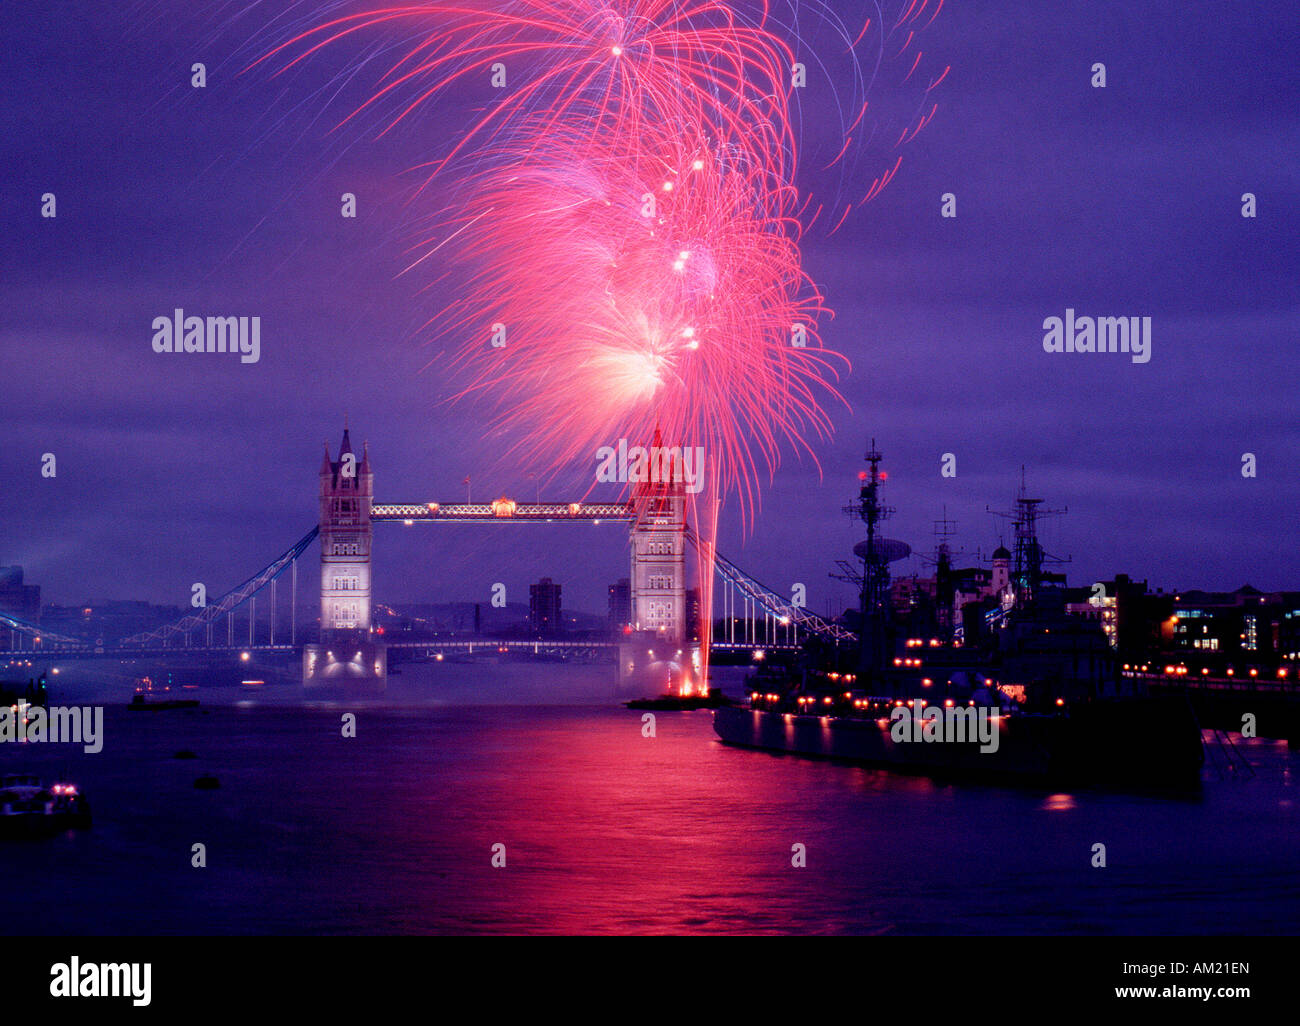 Tower Bridge at night with Fireworks in London - Stock Image